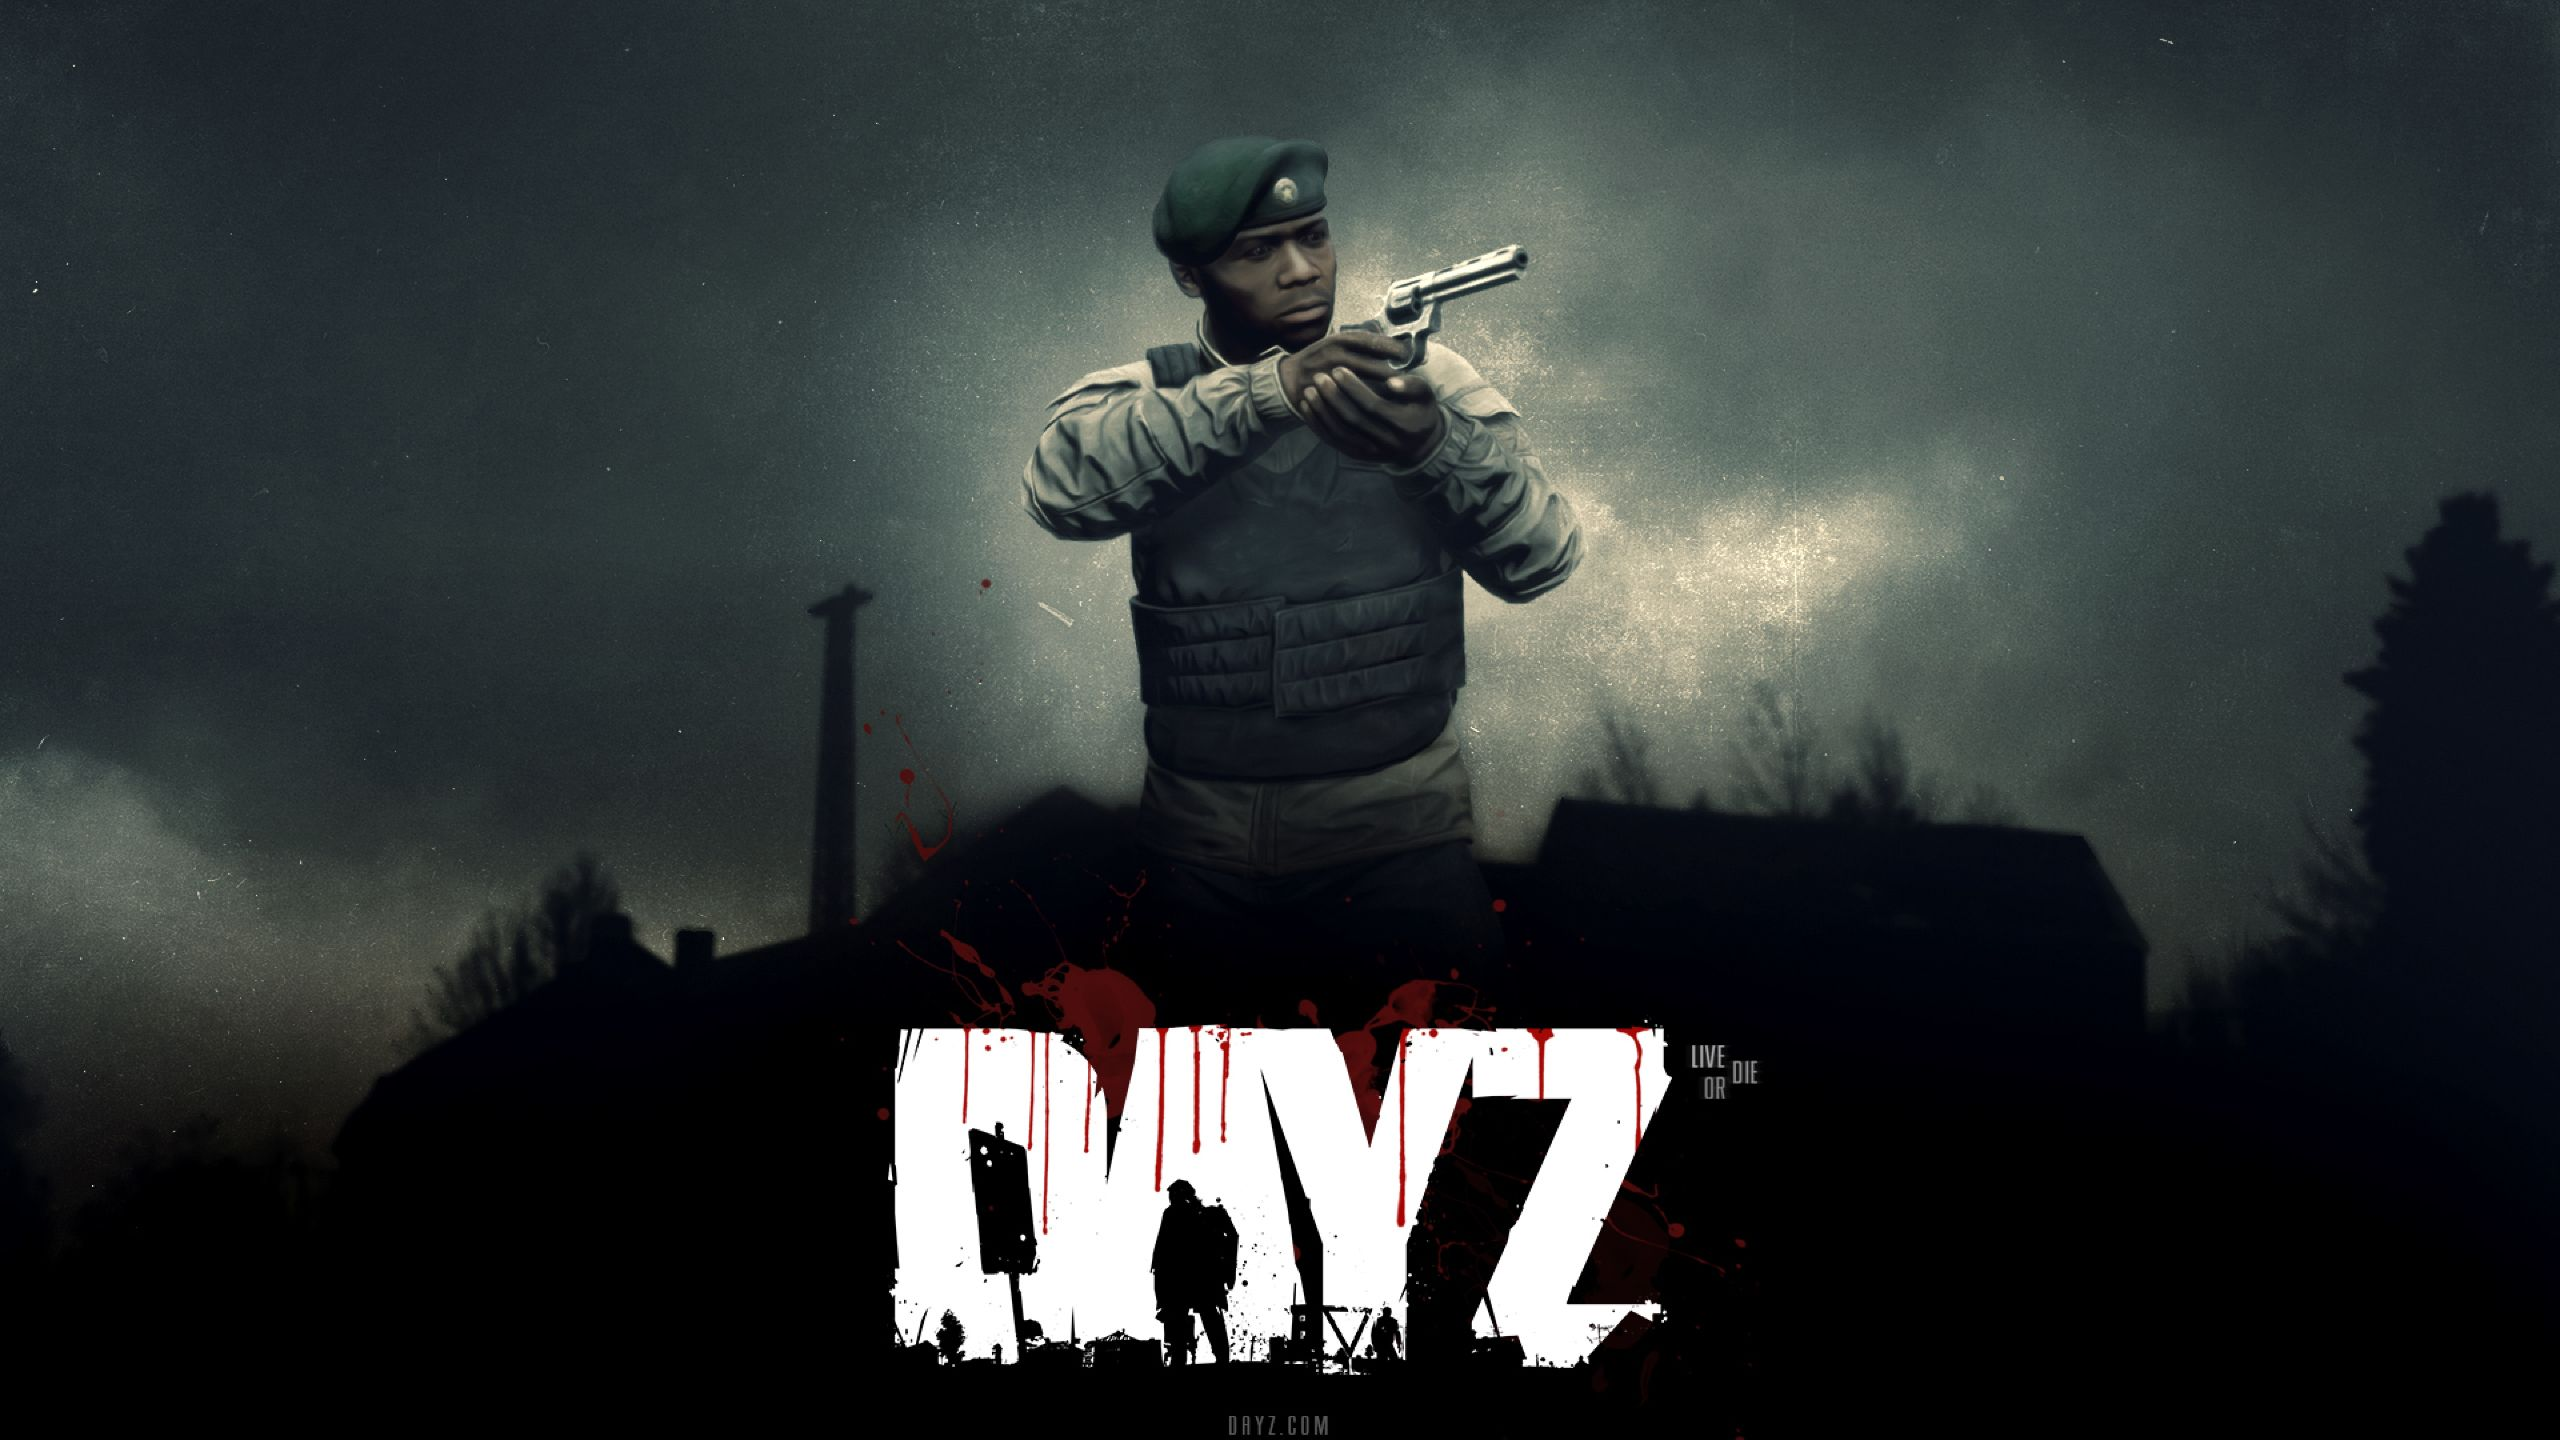 Dayz Wallpaper hd